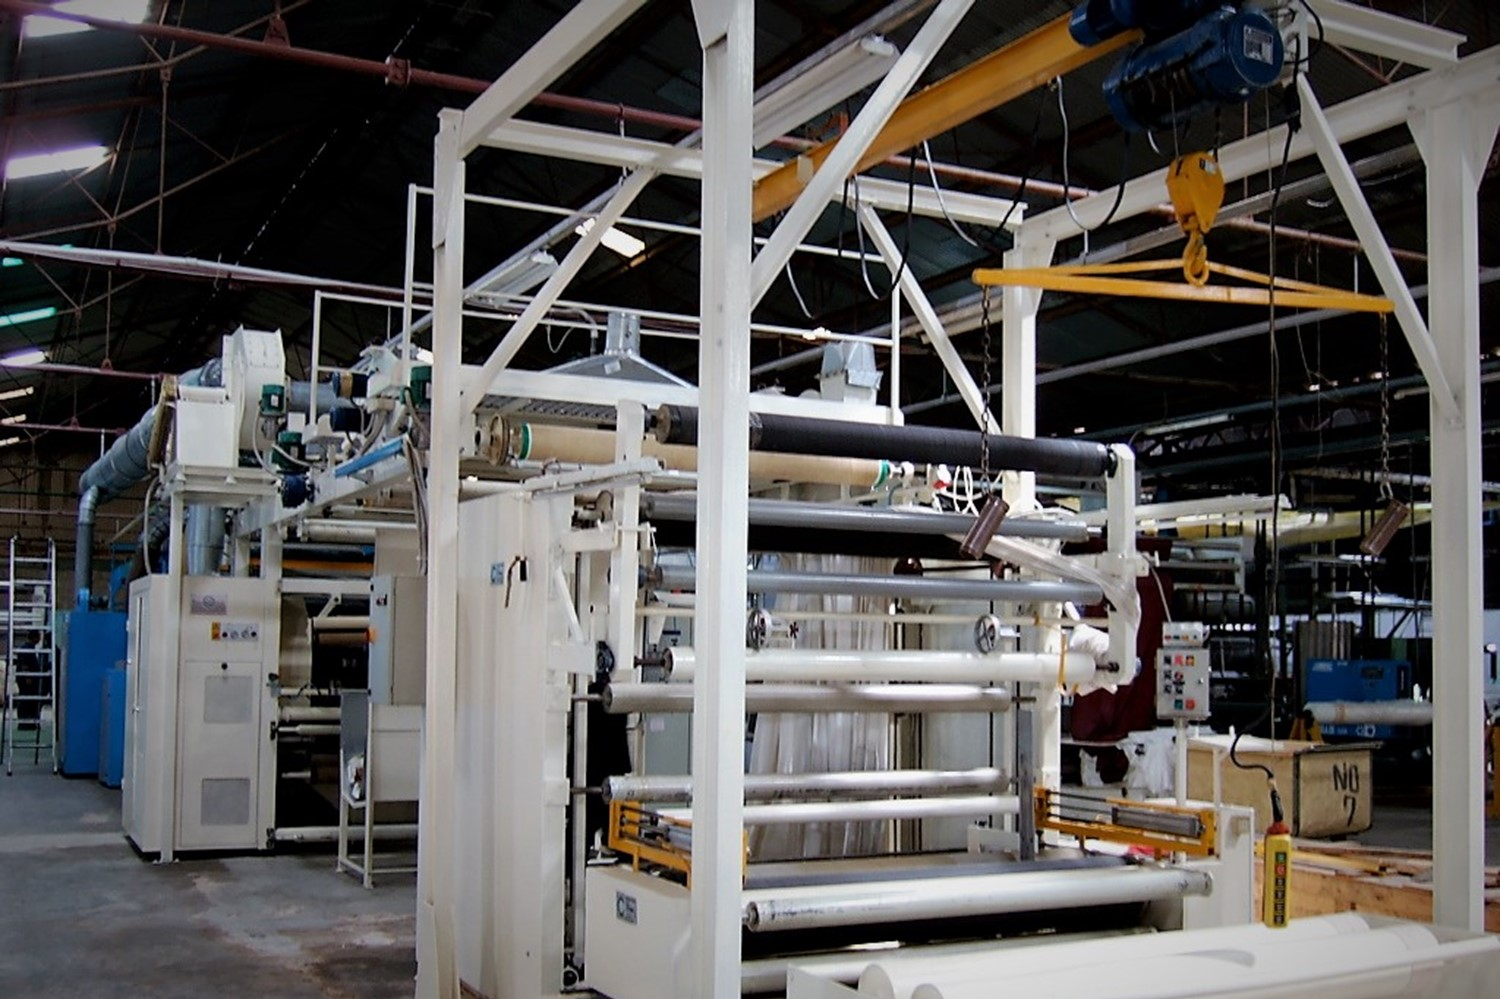 3.RAISED FABRIC QUALITY CONTROL _ PACKAGING_reconditioning of exhisting textile plant